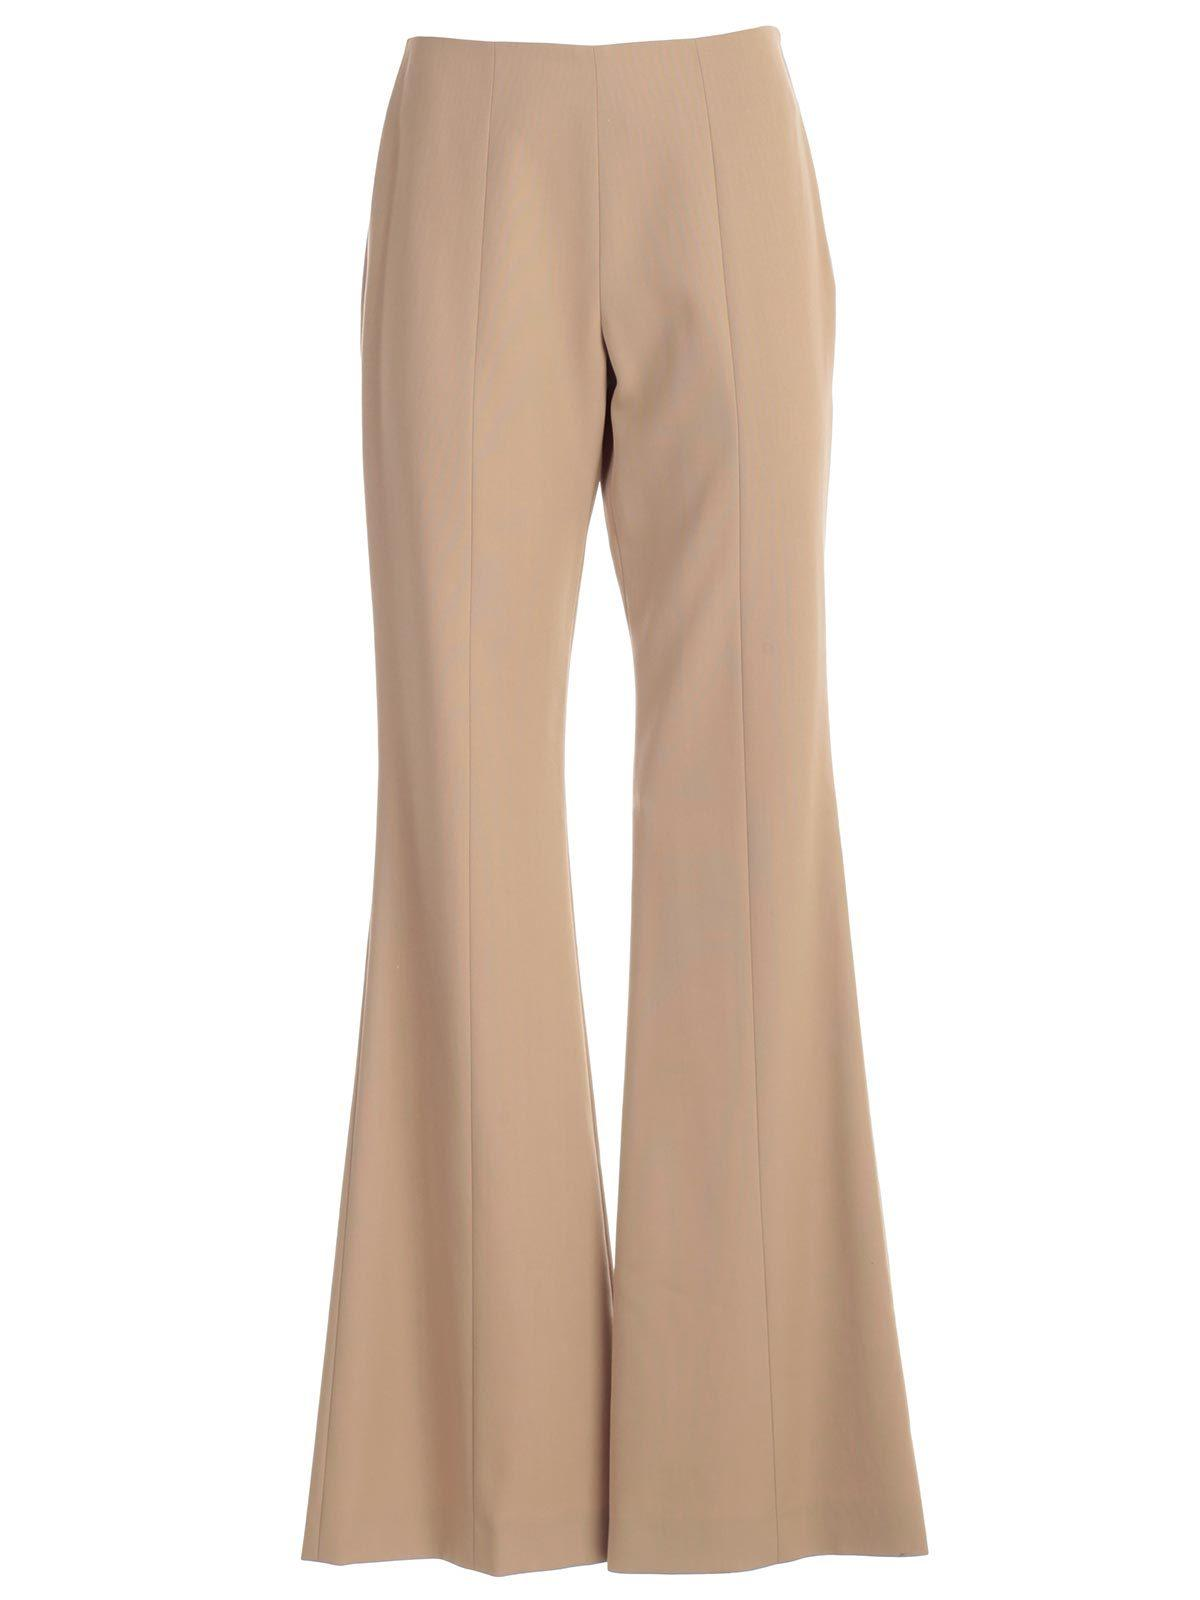 1595a7321530 Lyst - Maison Margiela Flared Trousers in Natural